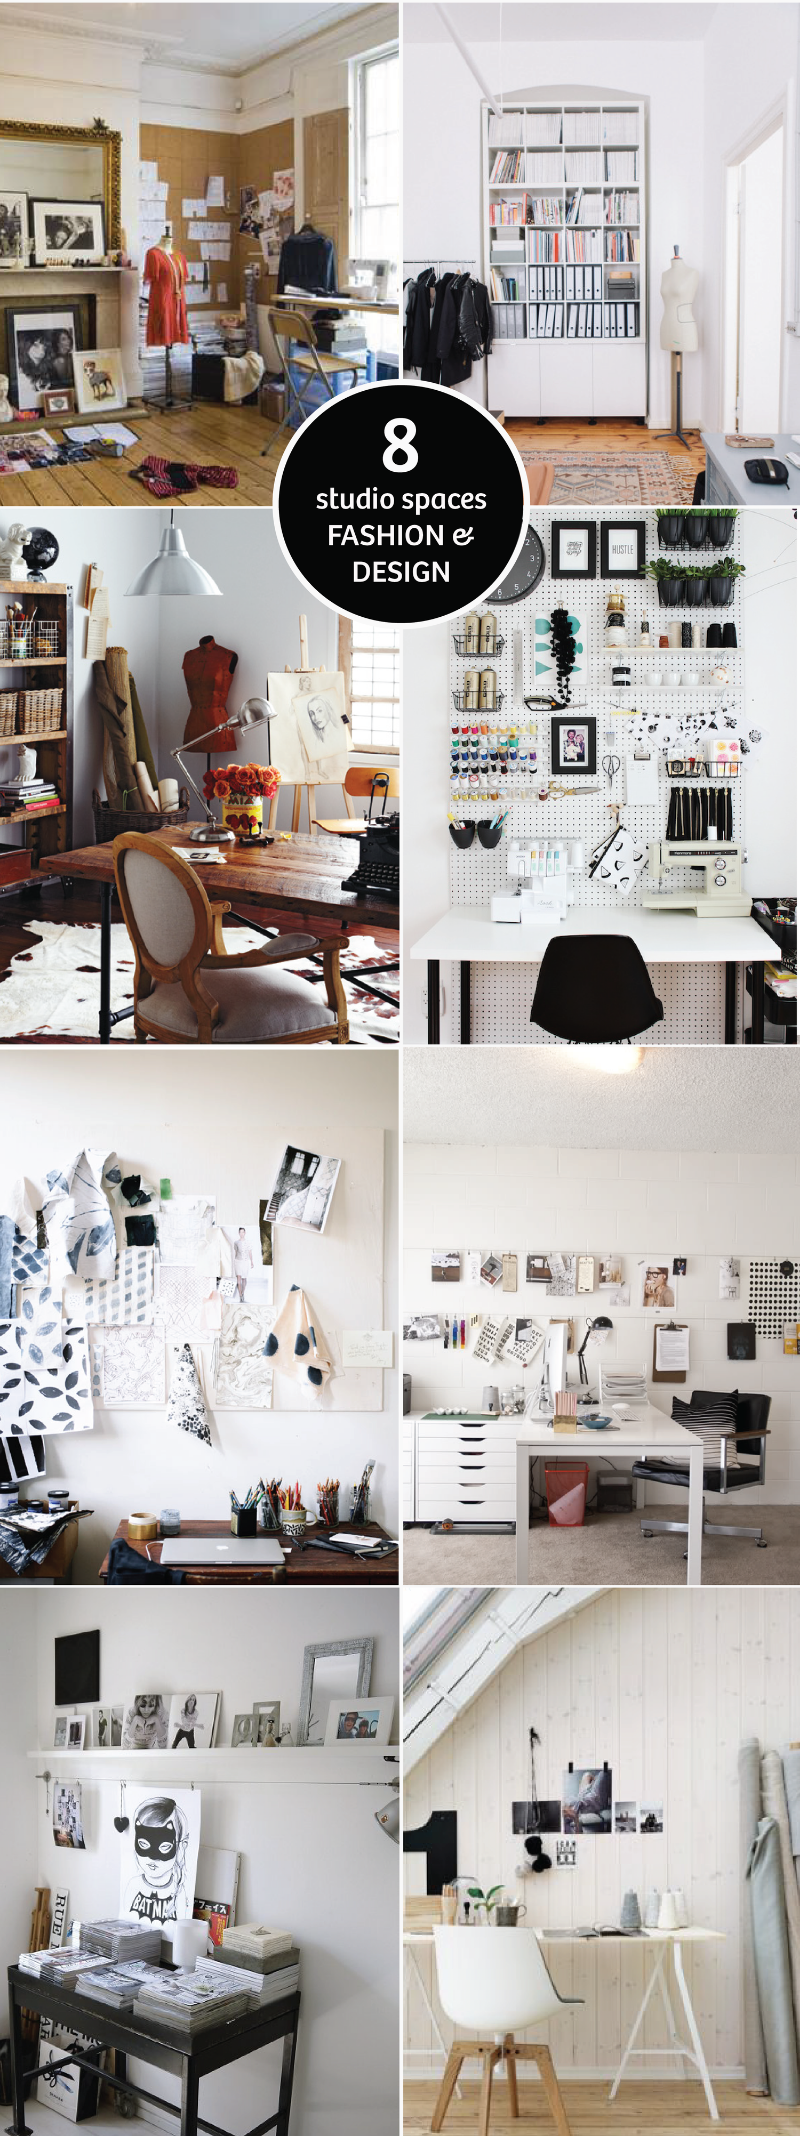 Inspiring Studio Spaces For Fashion Design Stephanie Eche